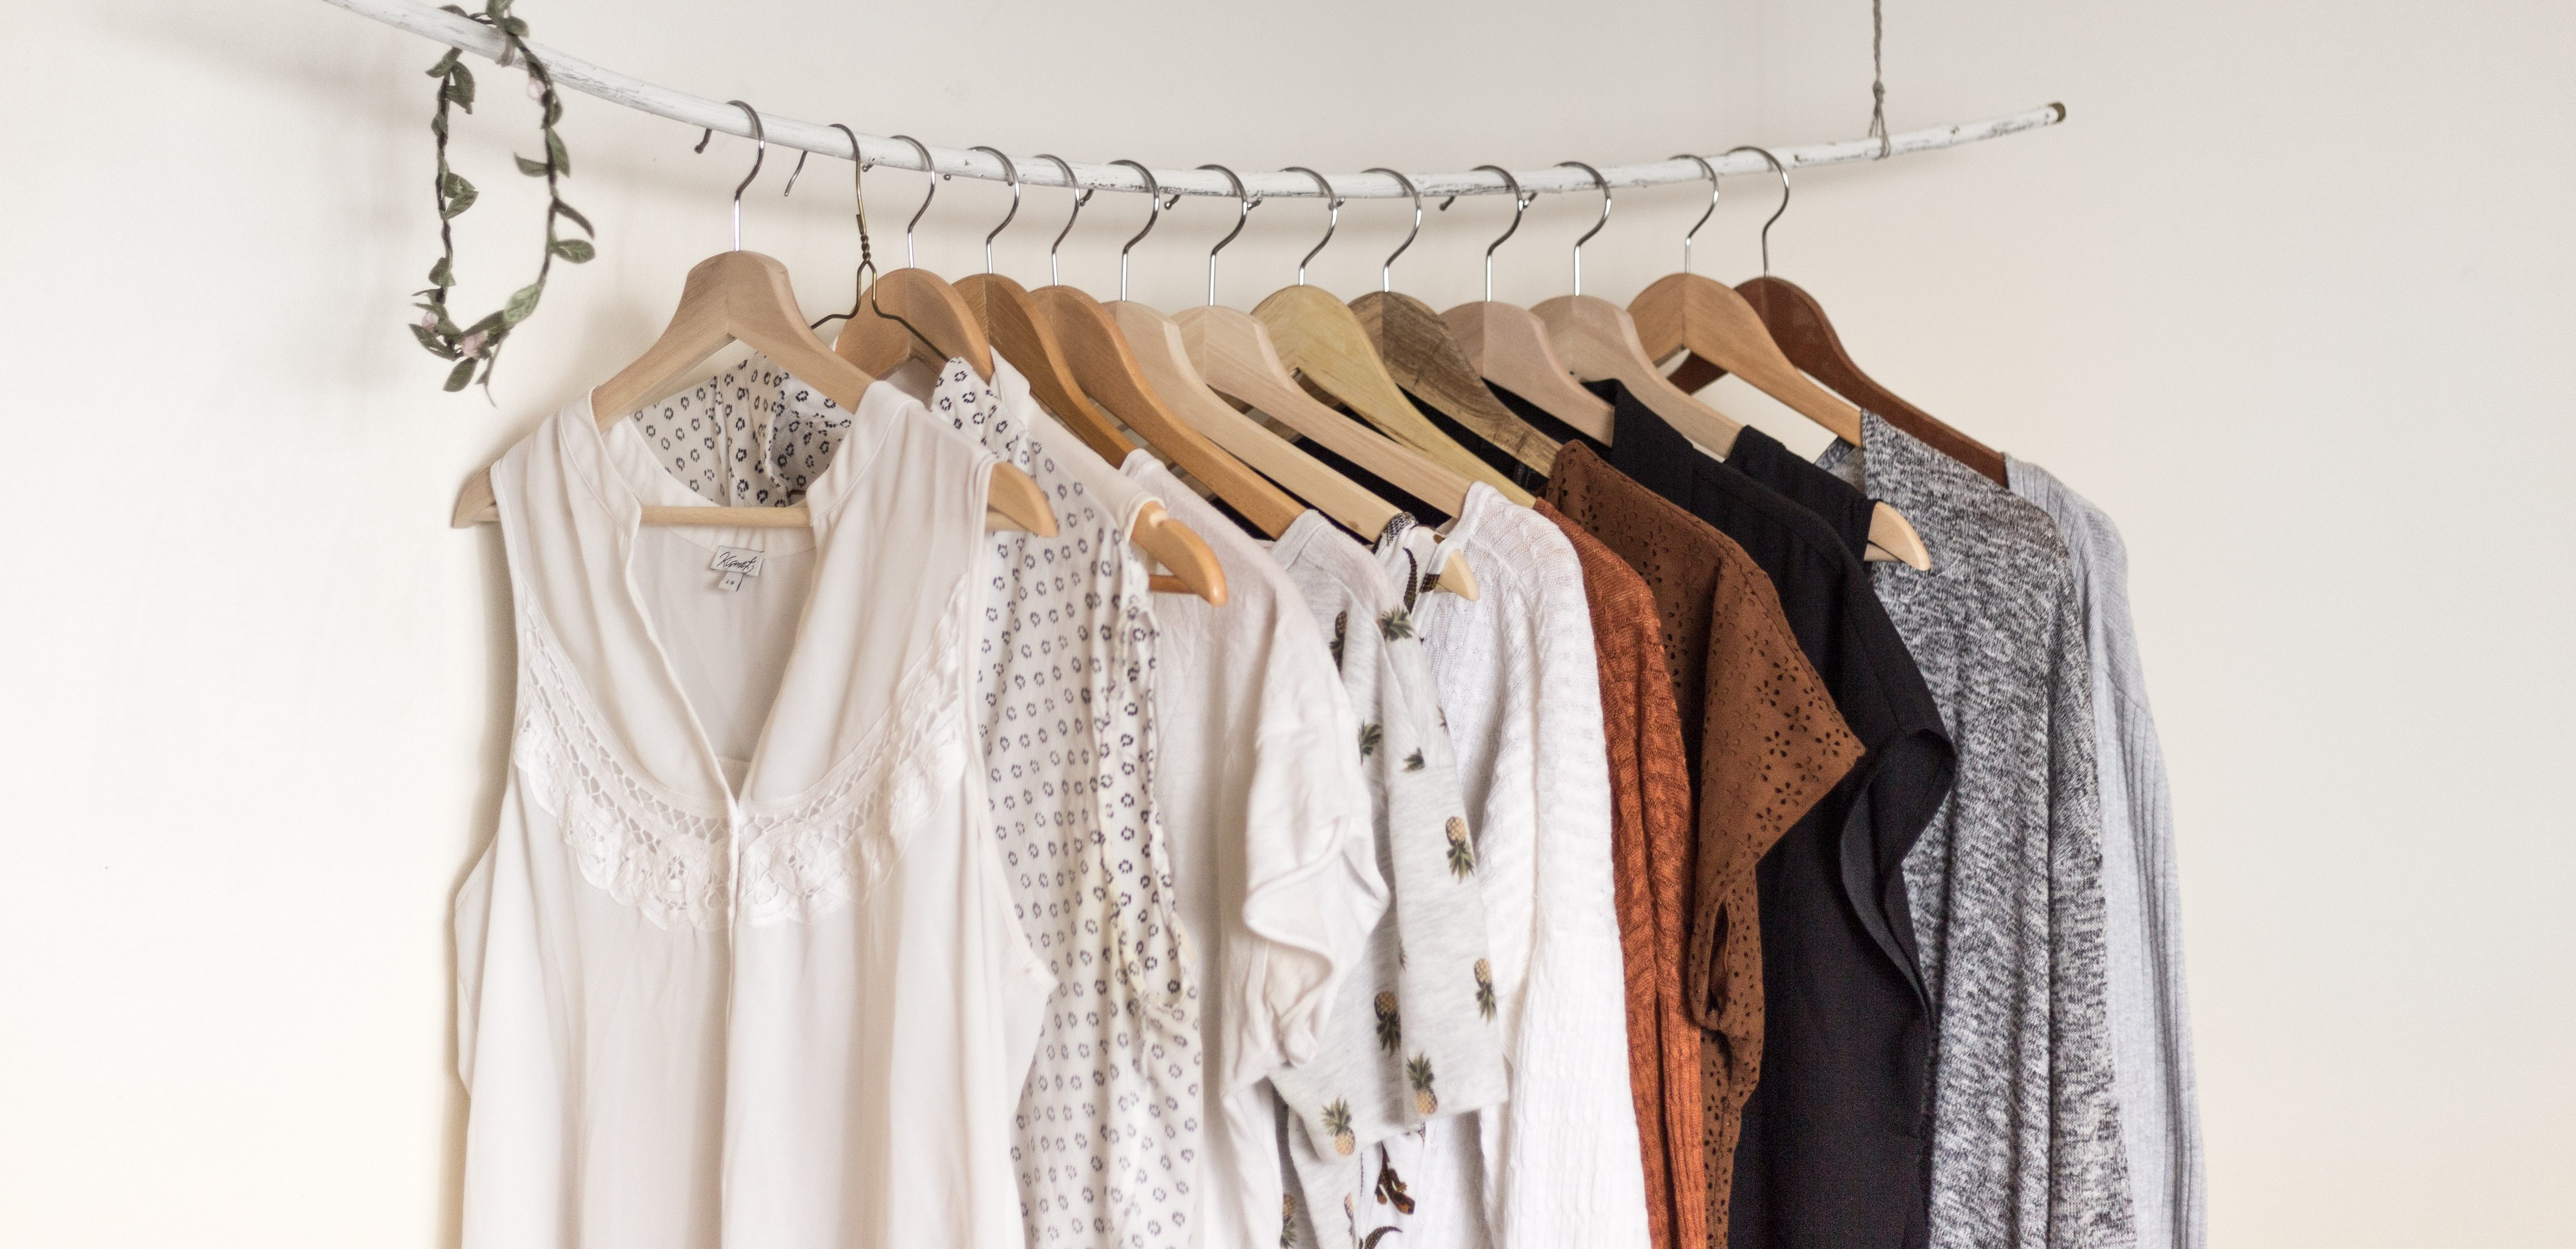 9 Interesting Fashion Hacks You Likely Haven't Thought Of